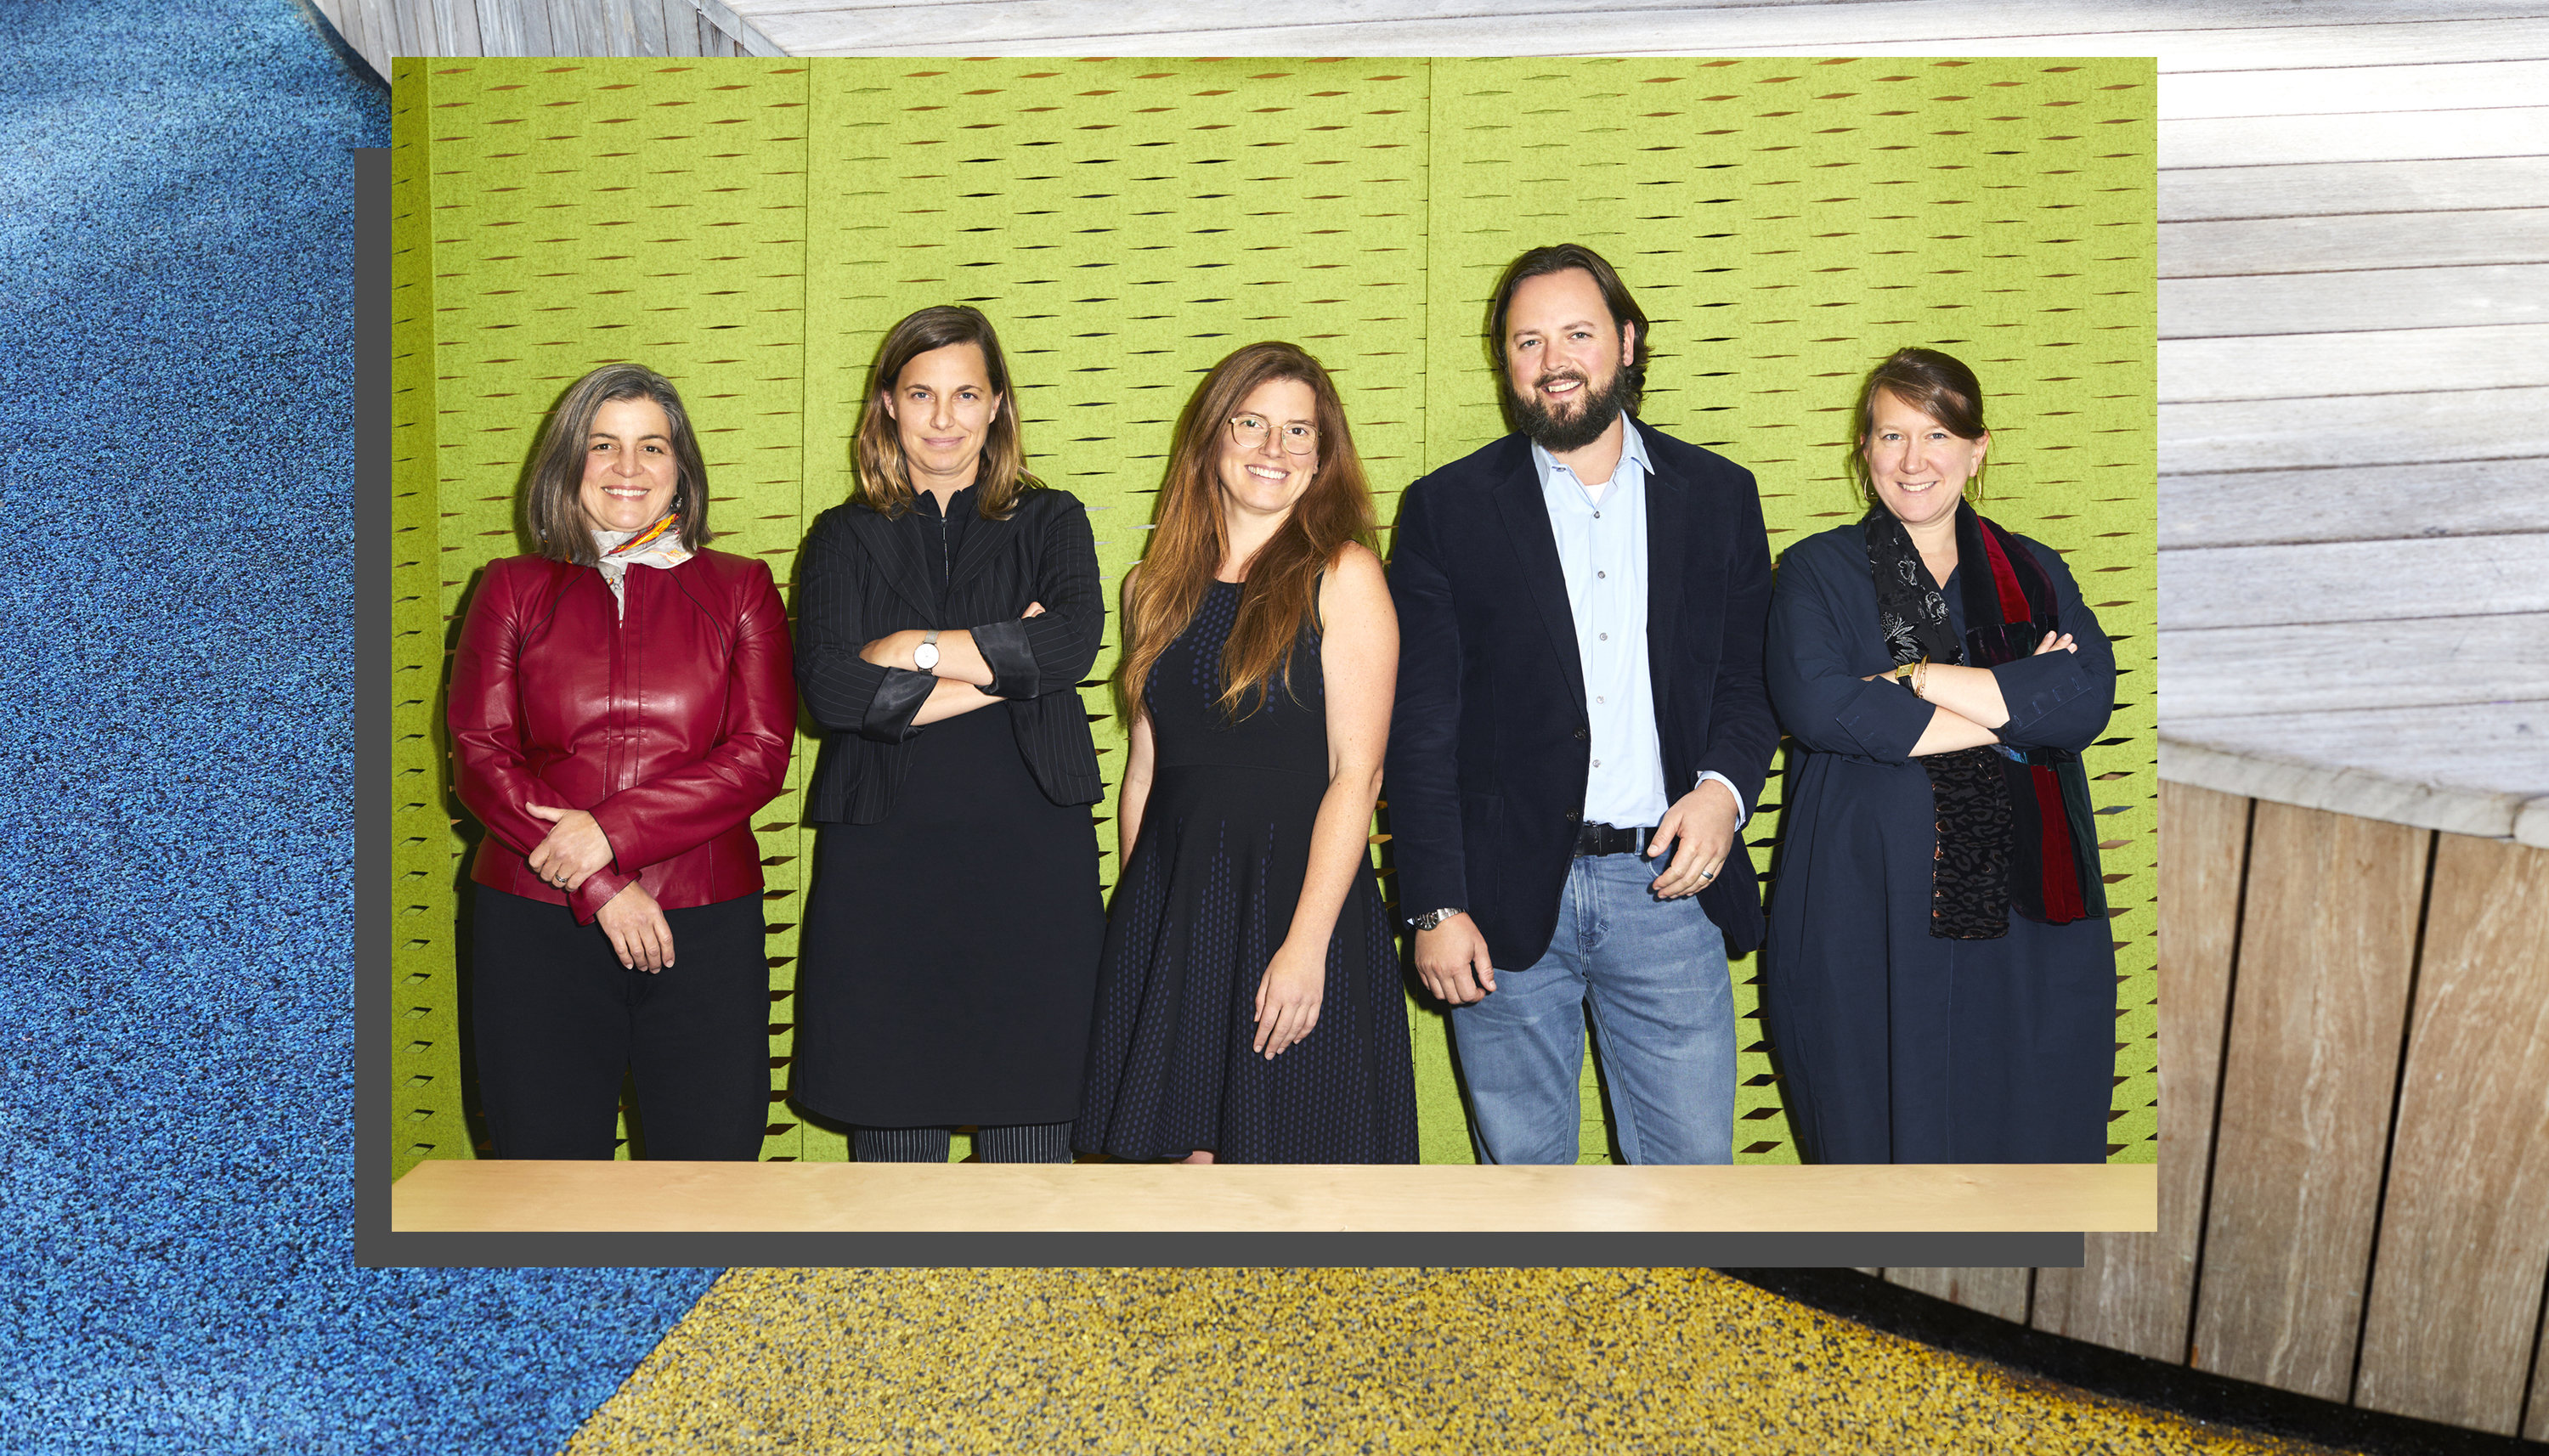 Five people—four women and one man—pose against a textured background.